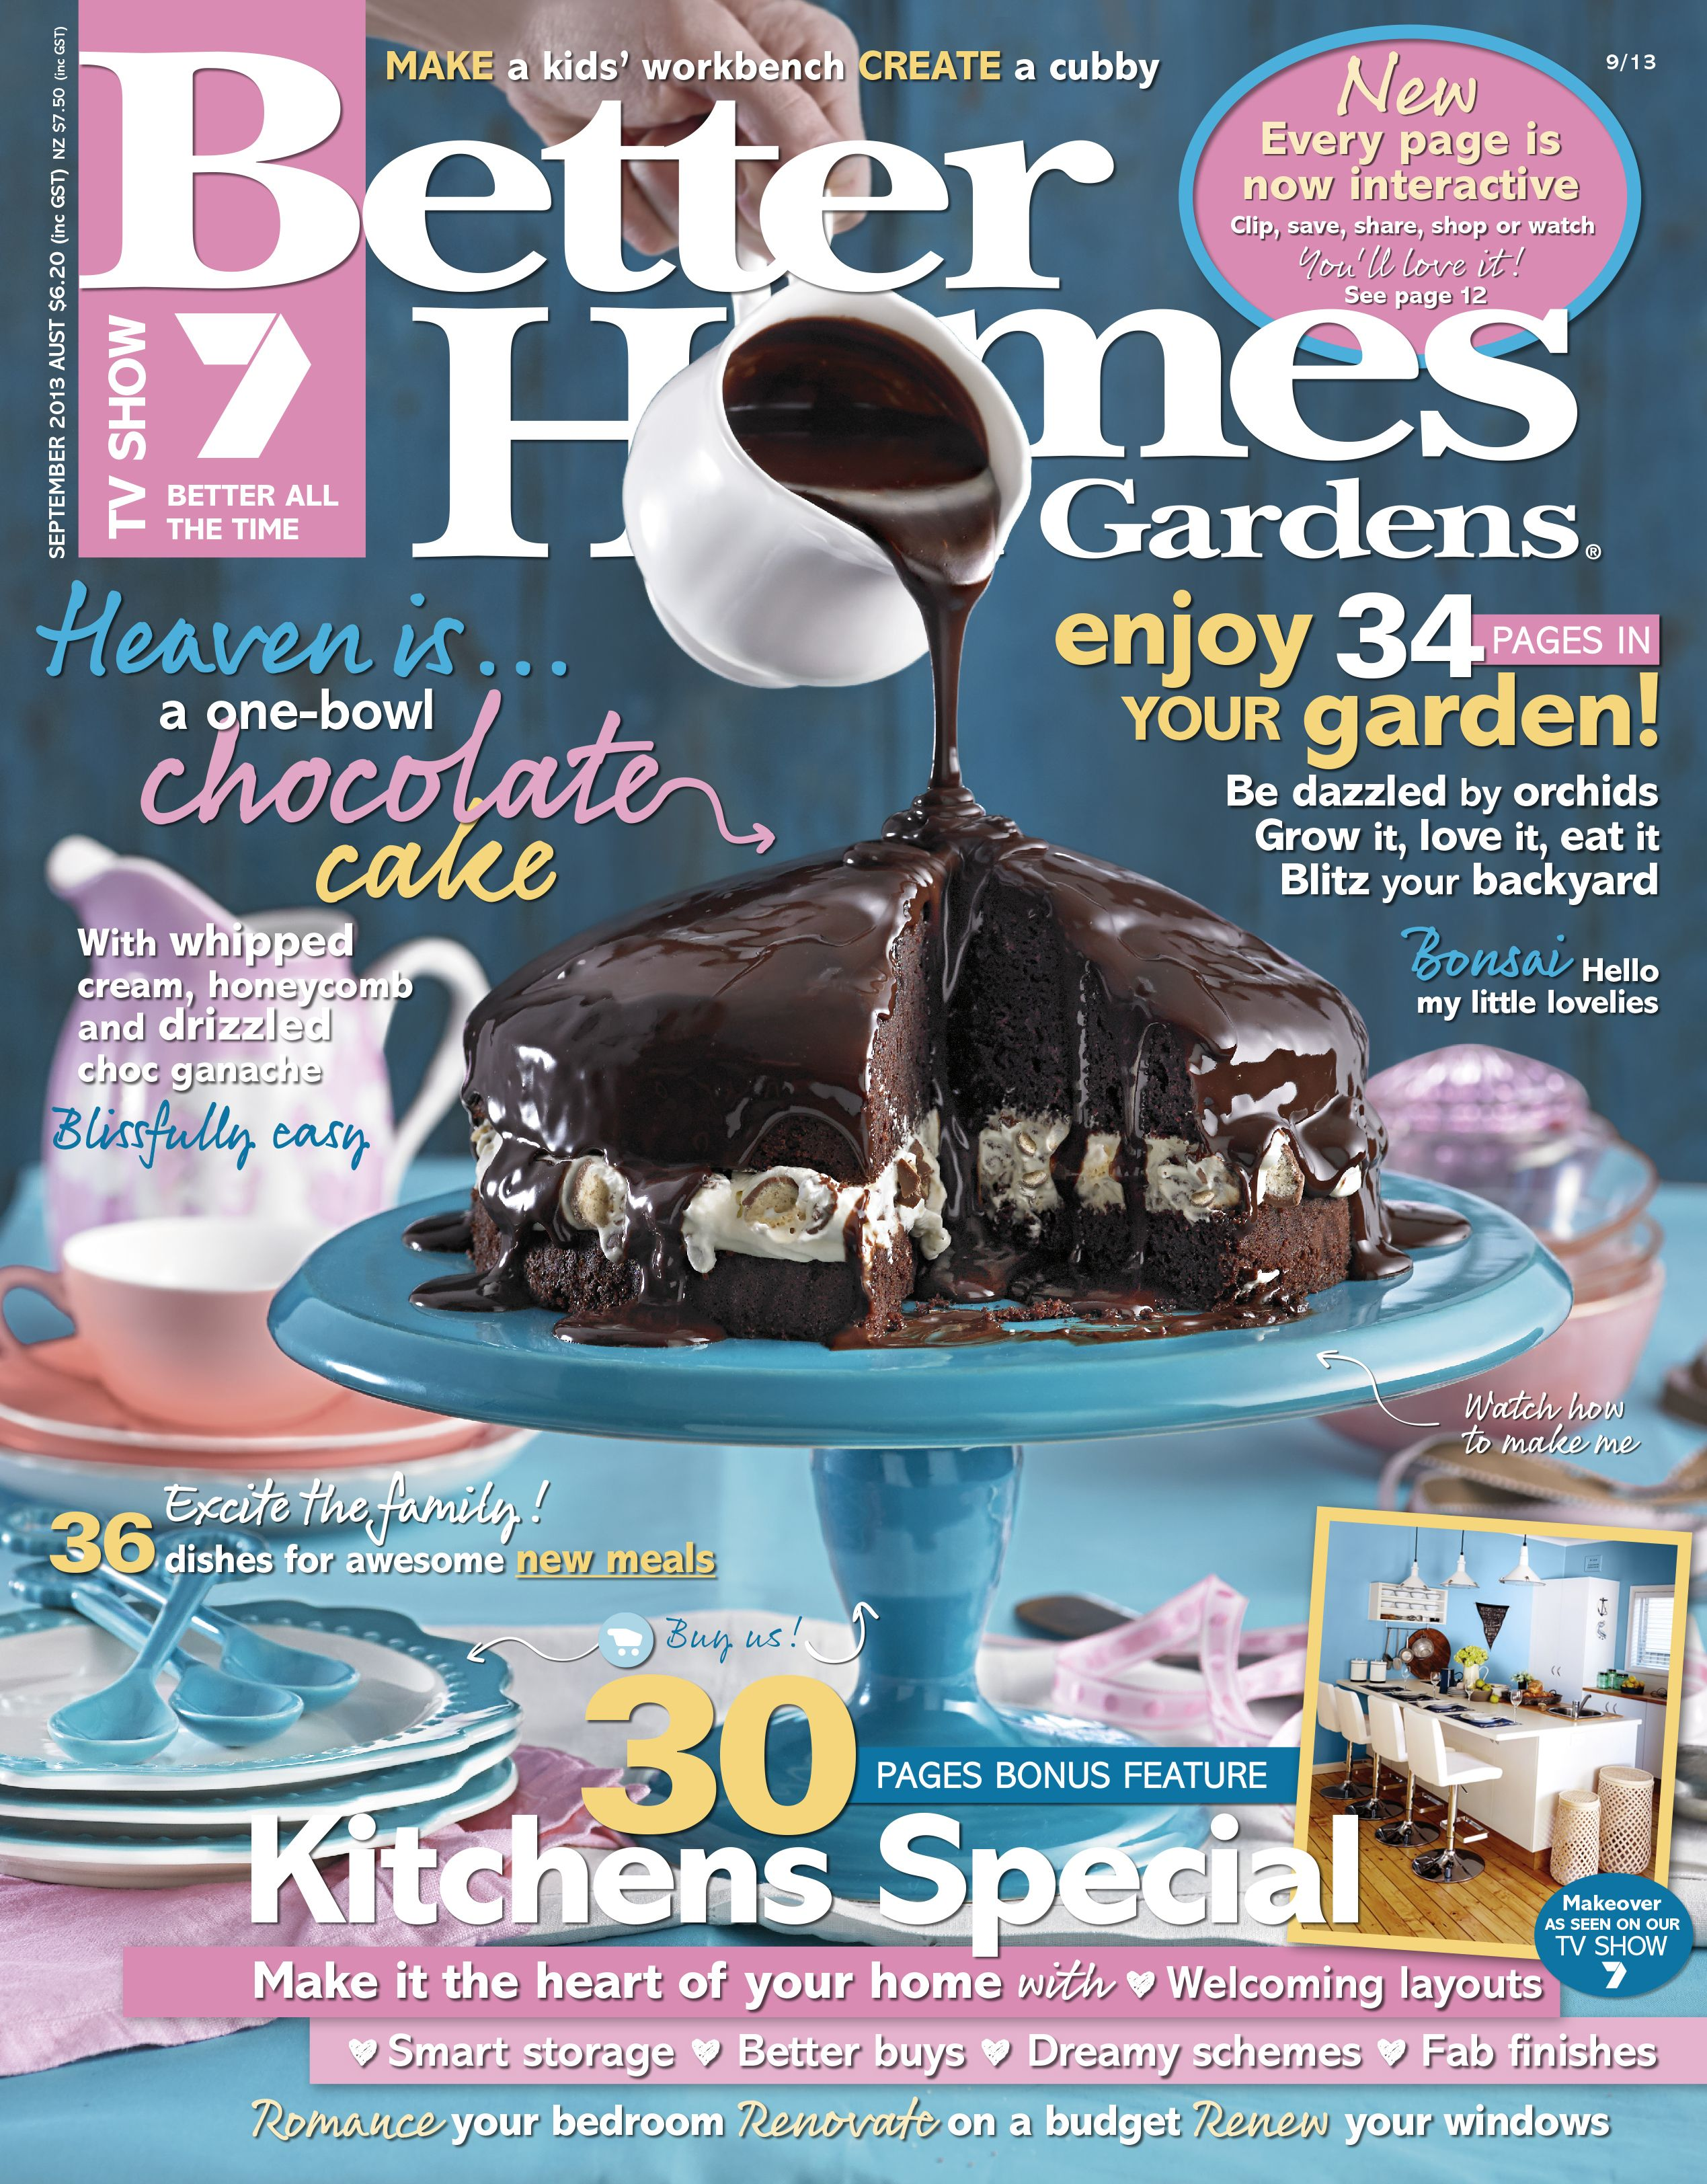 Better homes gardens september 2013 magazines Yahoo better homes and gardens